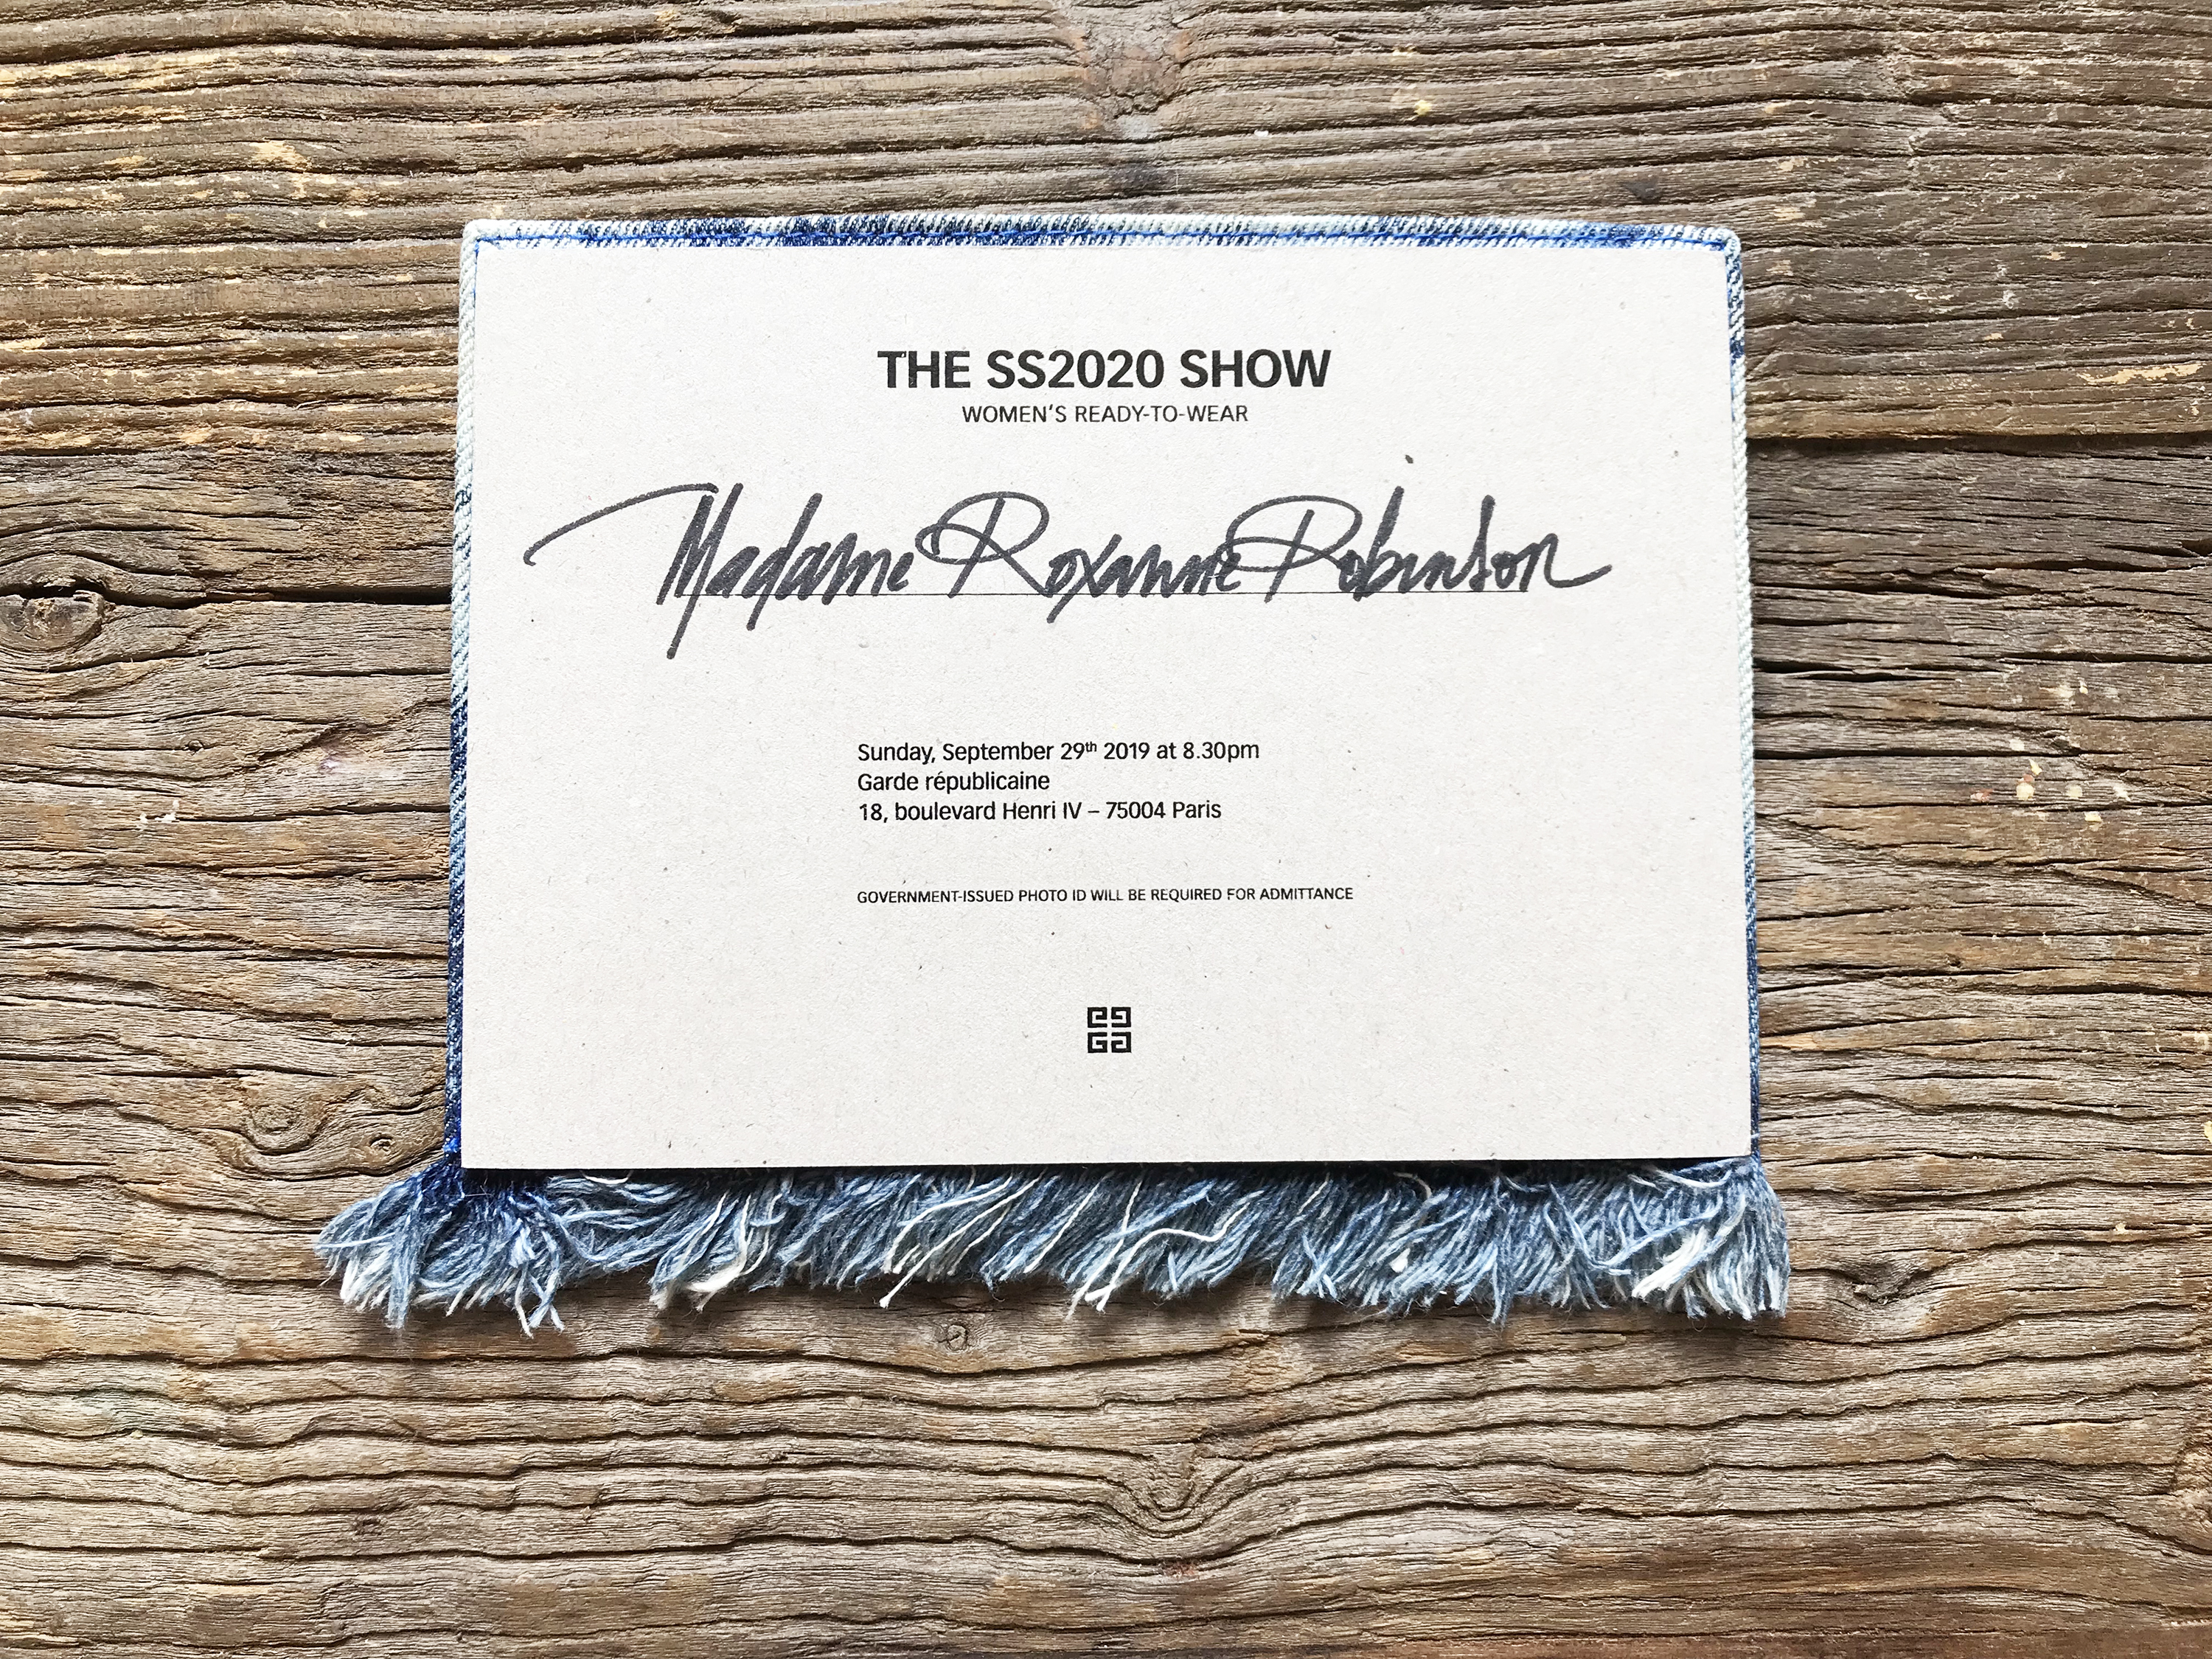 The Best of Spring 2020 RTW Show Invitations